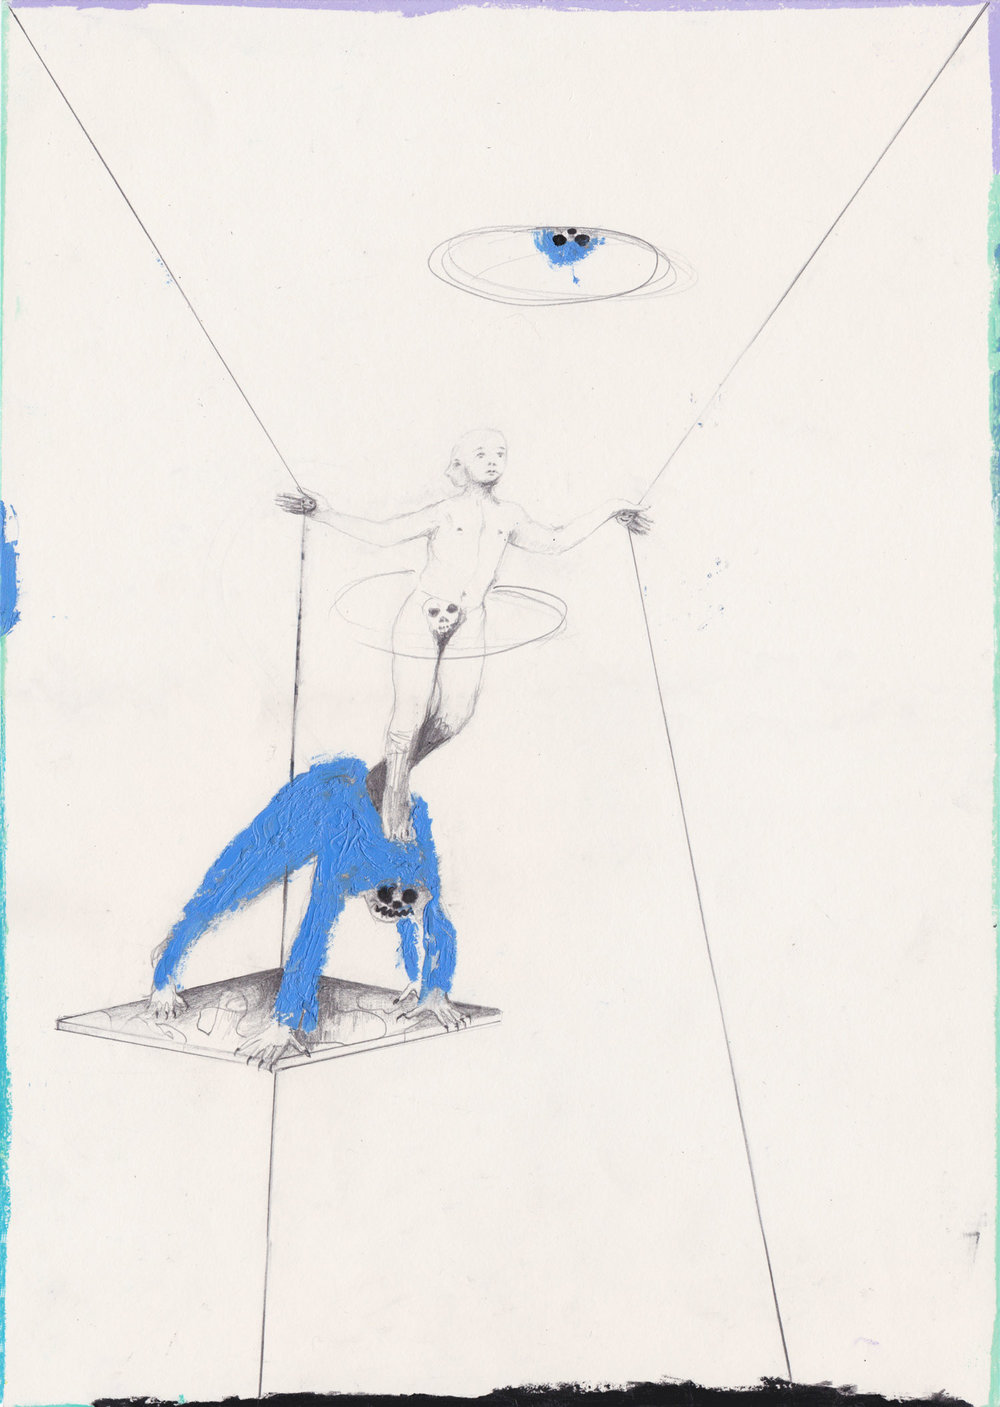 Balance , 2017, graphite and oil pastel on paper, 42 x 29.7 cm